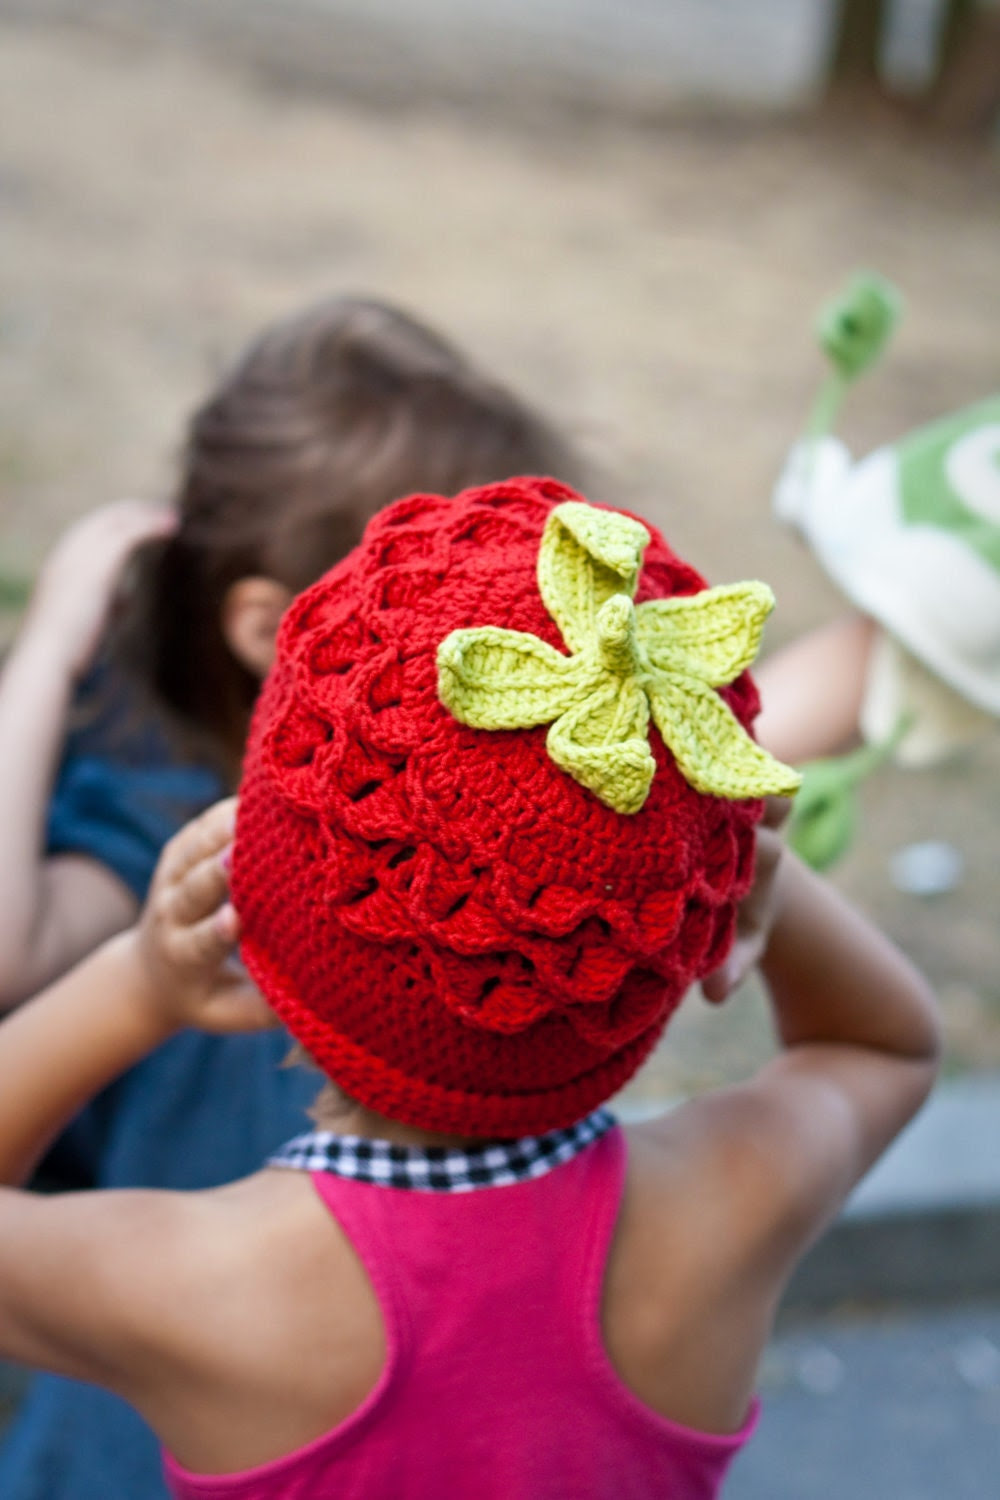 Funny Crochet Halloween Strawberry Hat Girlie Teen Woman Fall Autumn Accessories in Red Green designed by dodofit on Etsy